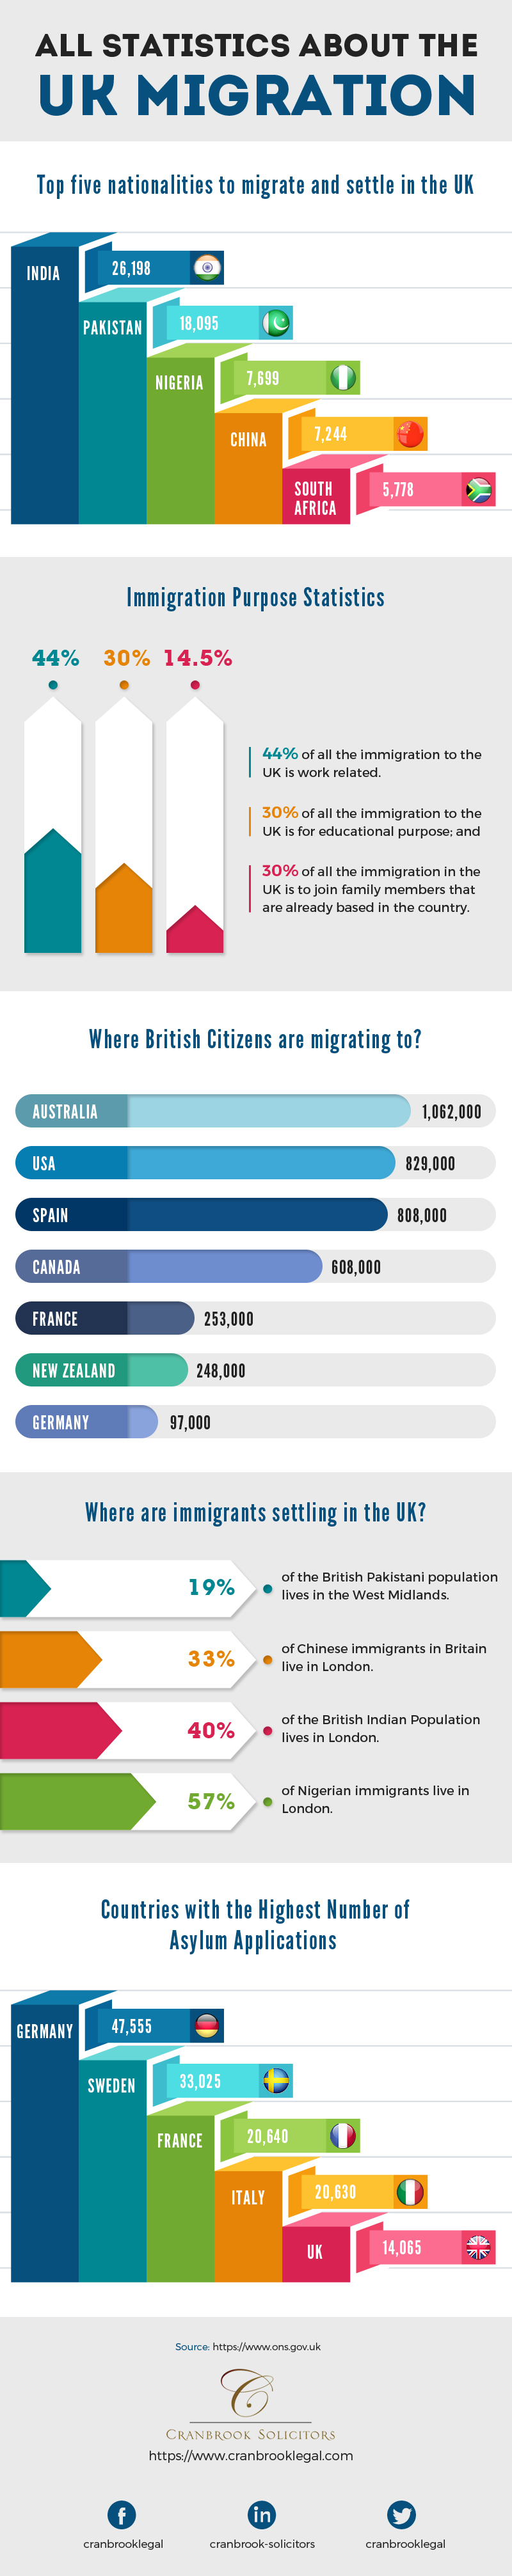 Statistics About The UK Migration